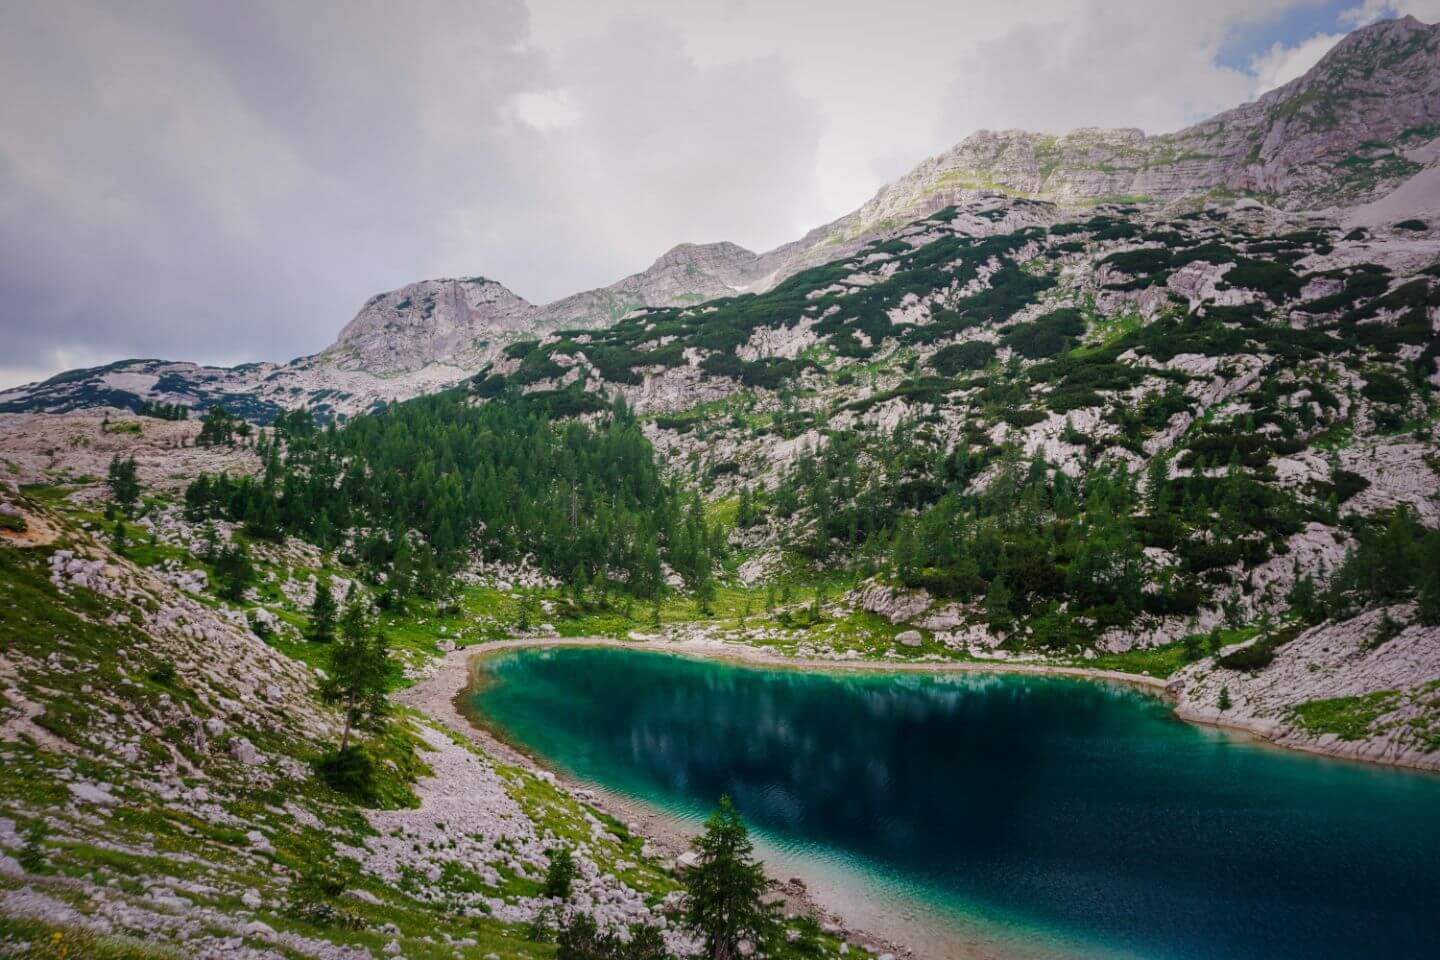 Jezero v Ledvicah (Kidney Lake), Triglav Lakes Valley Hike, Slovenia